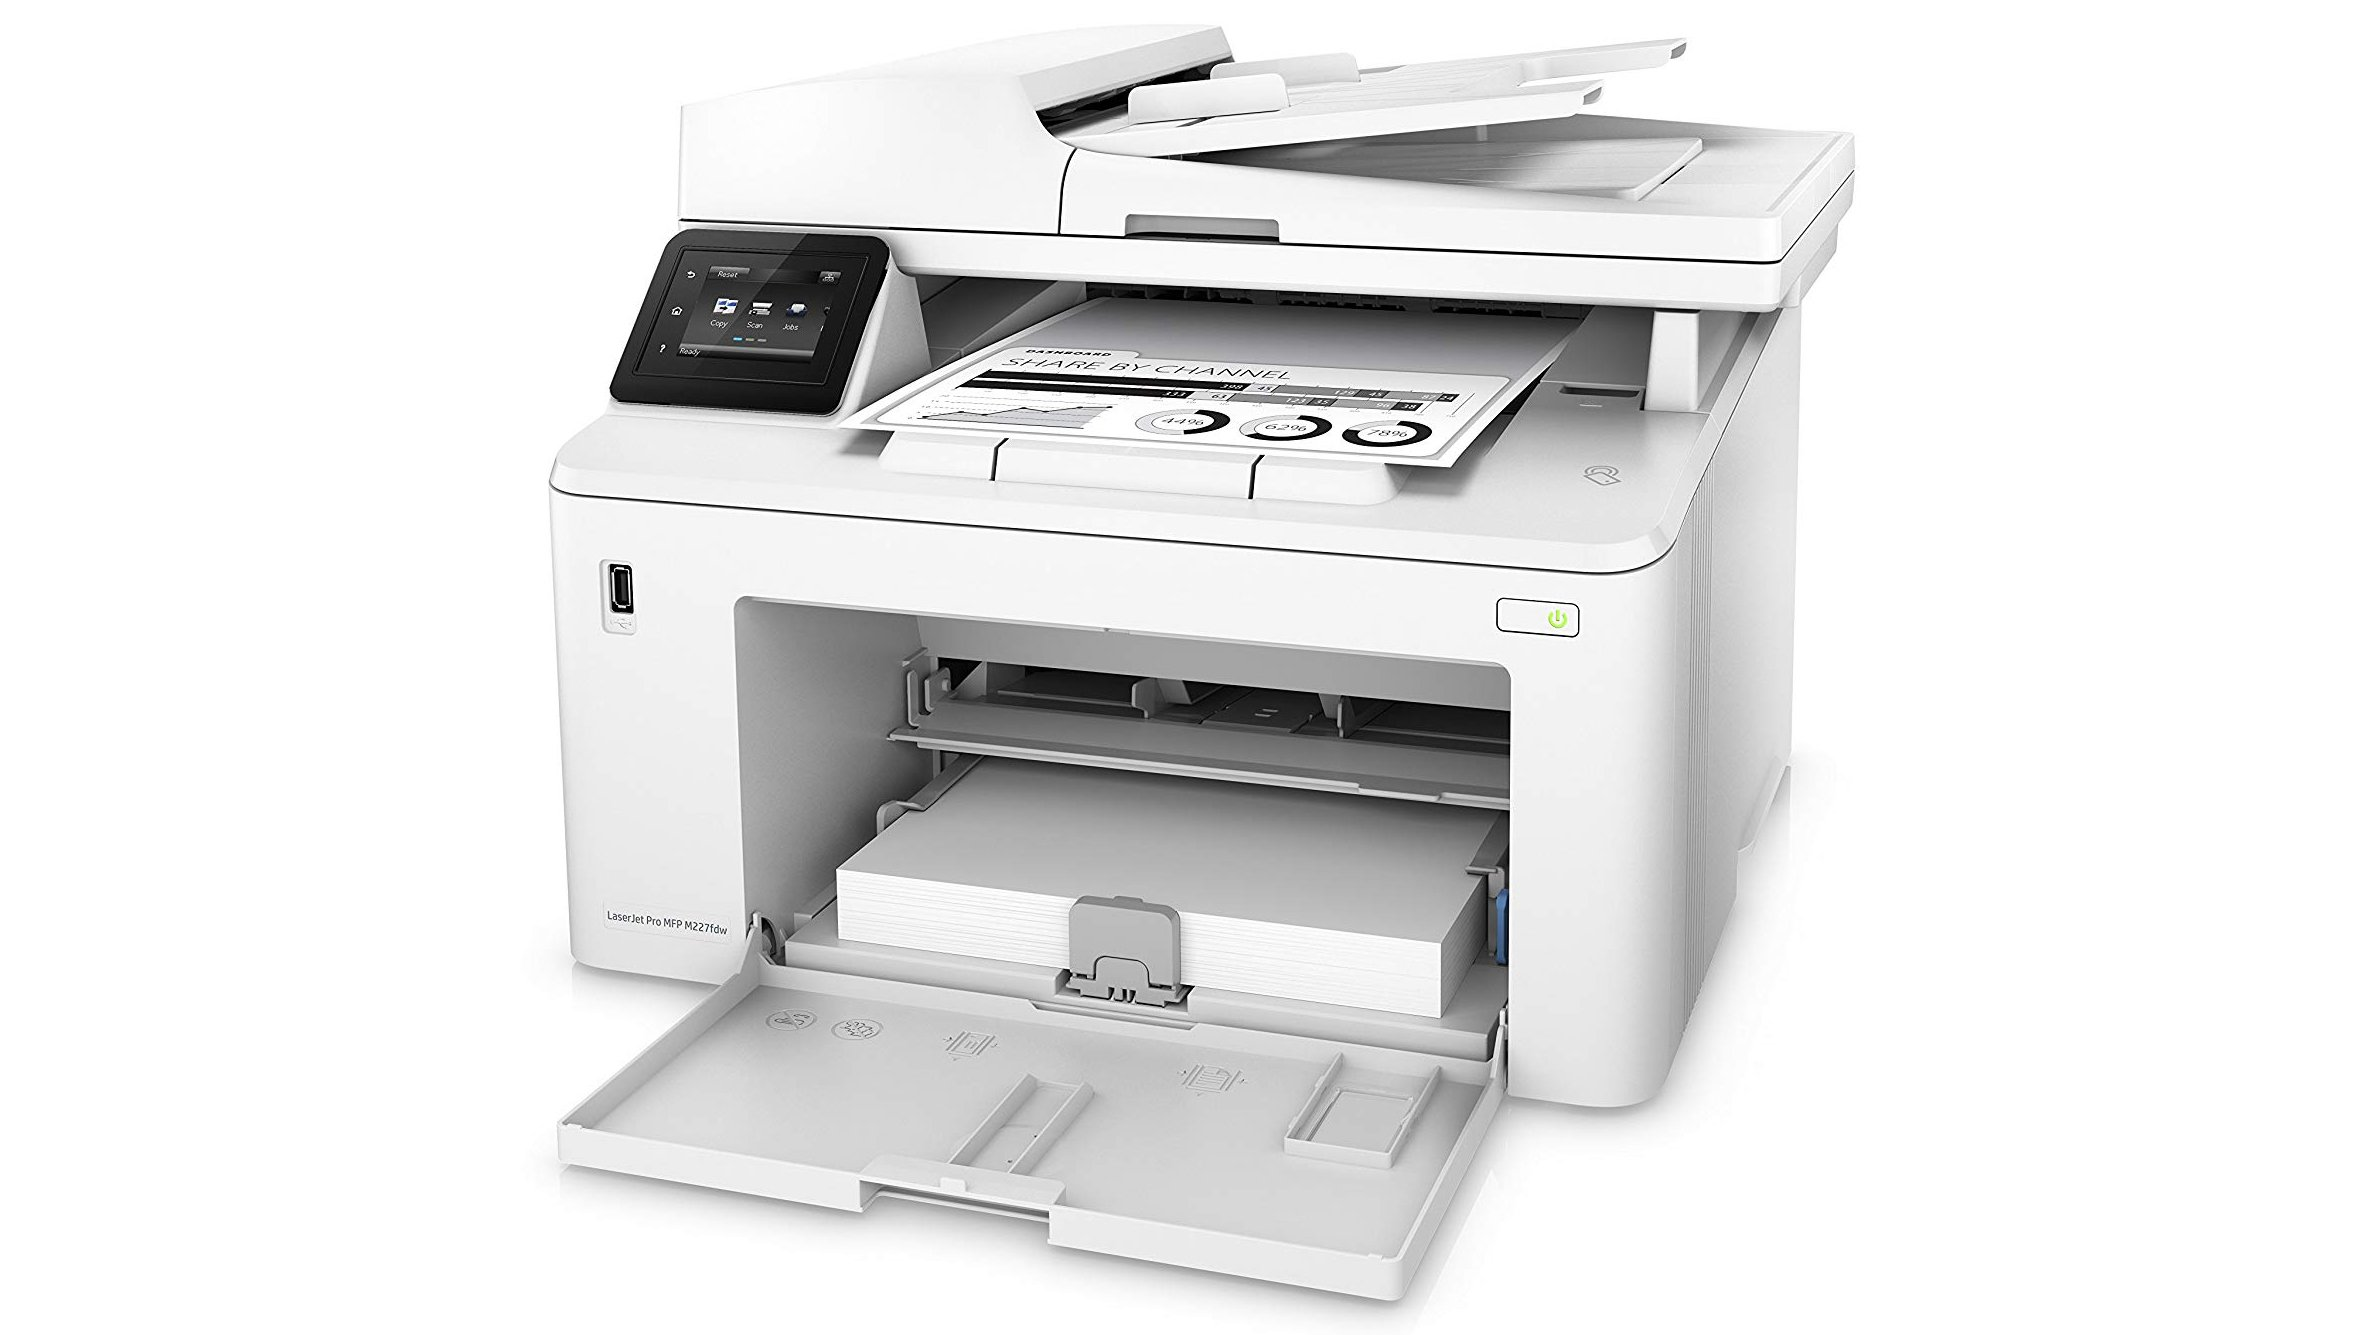 HP LaserJet Pro M227fdw review: A good MFP, but it's too expensive